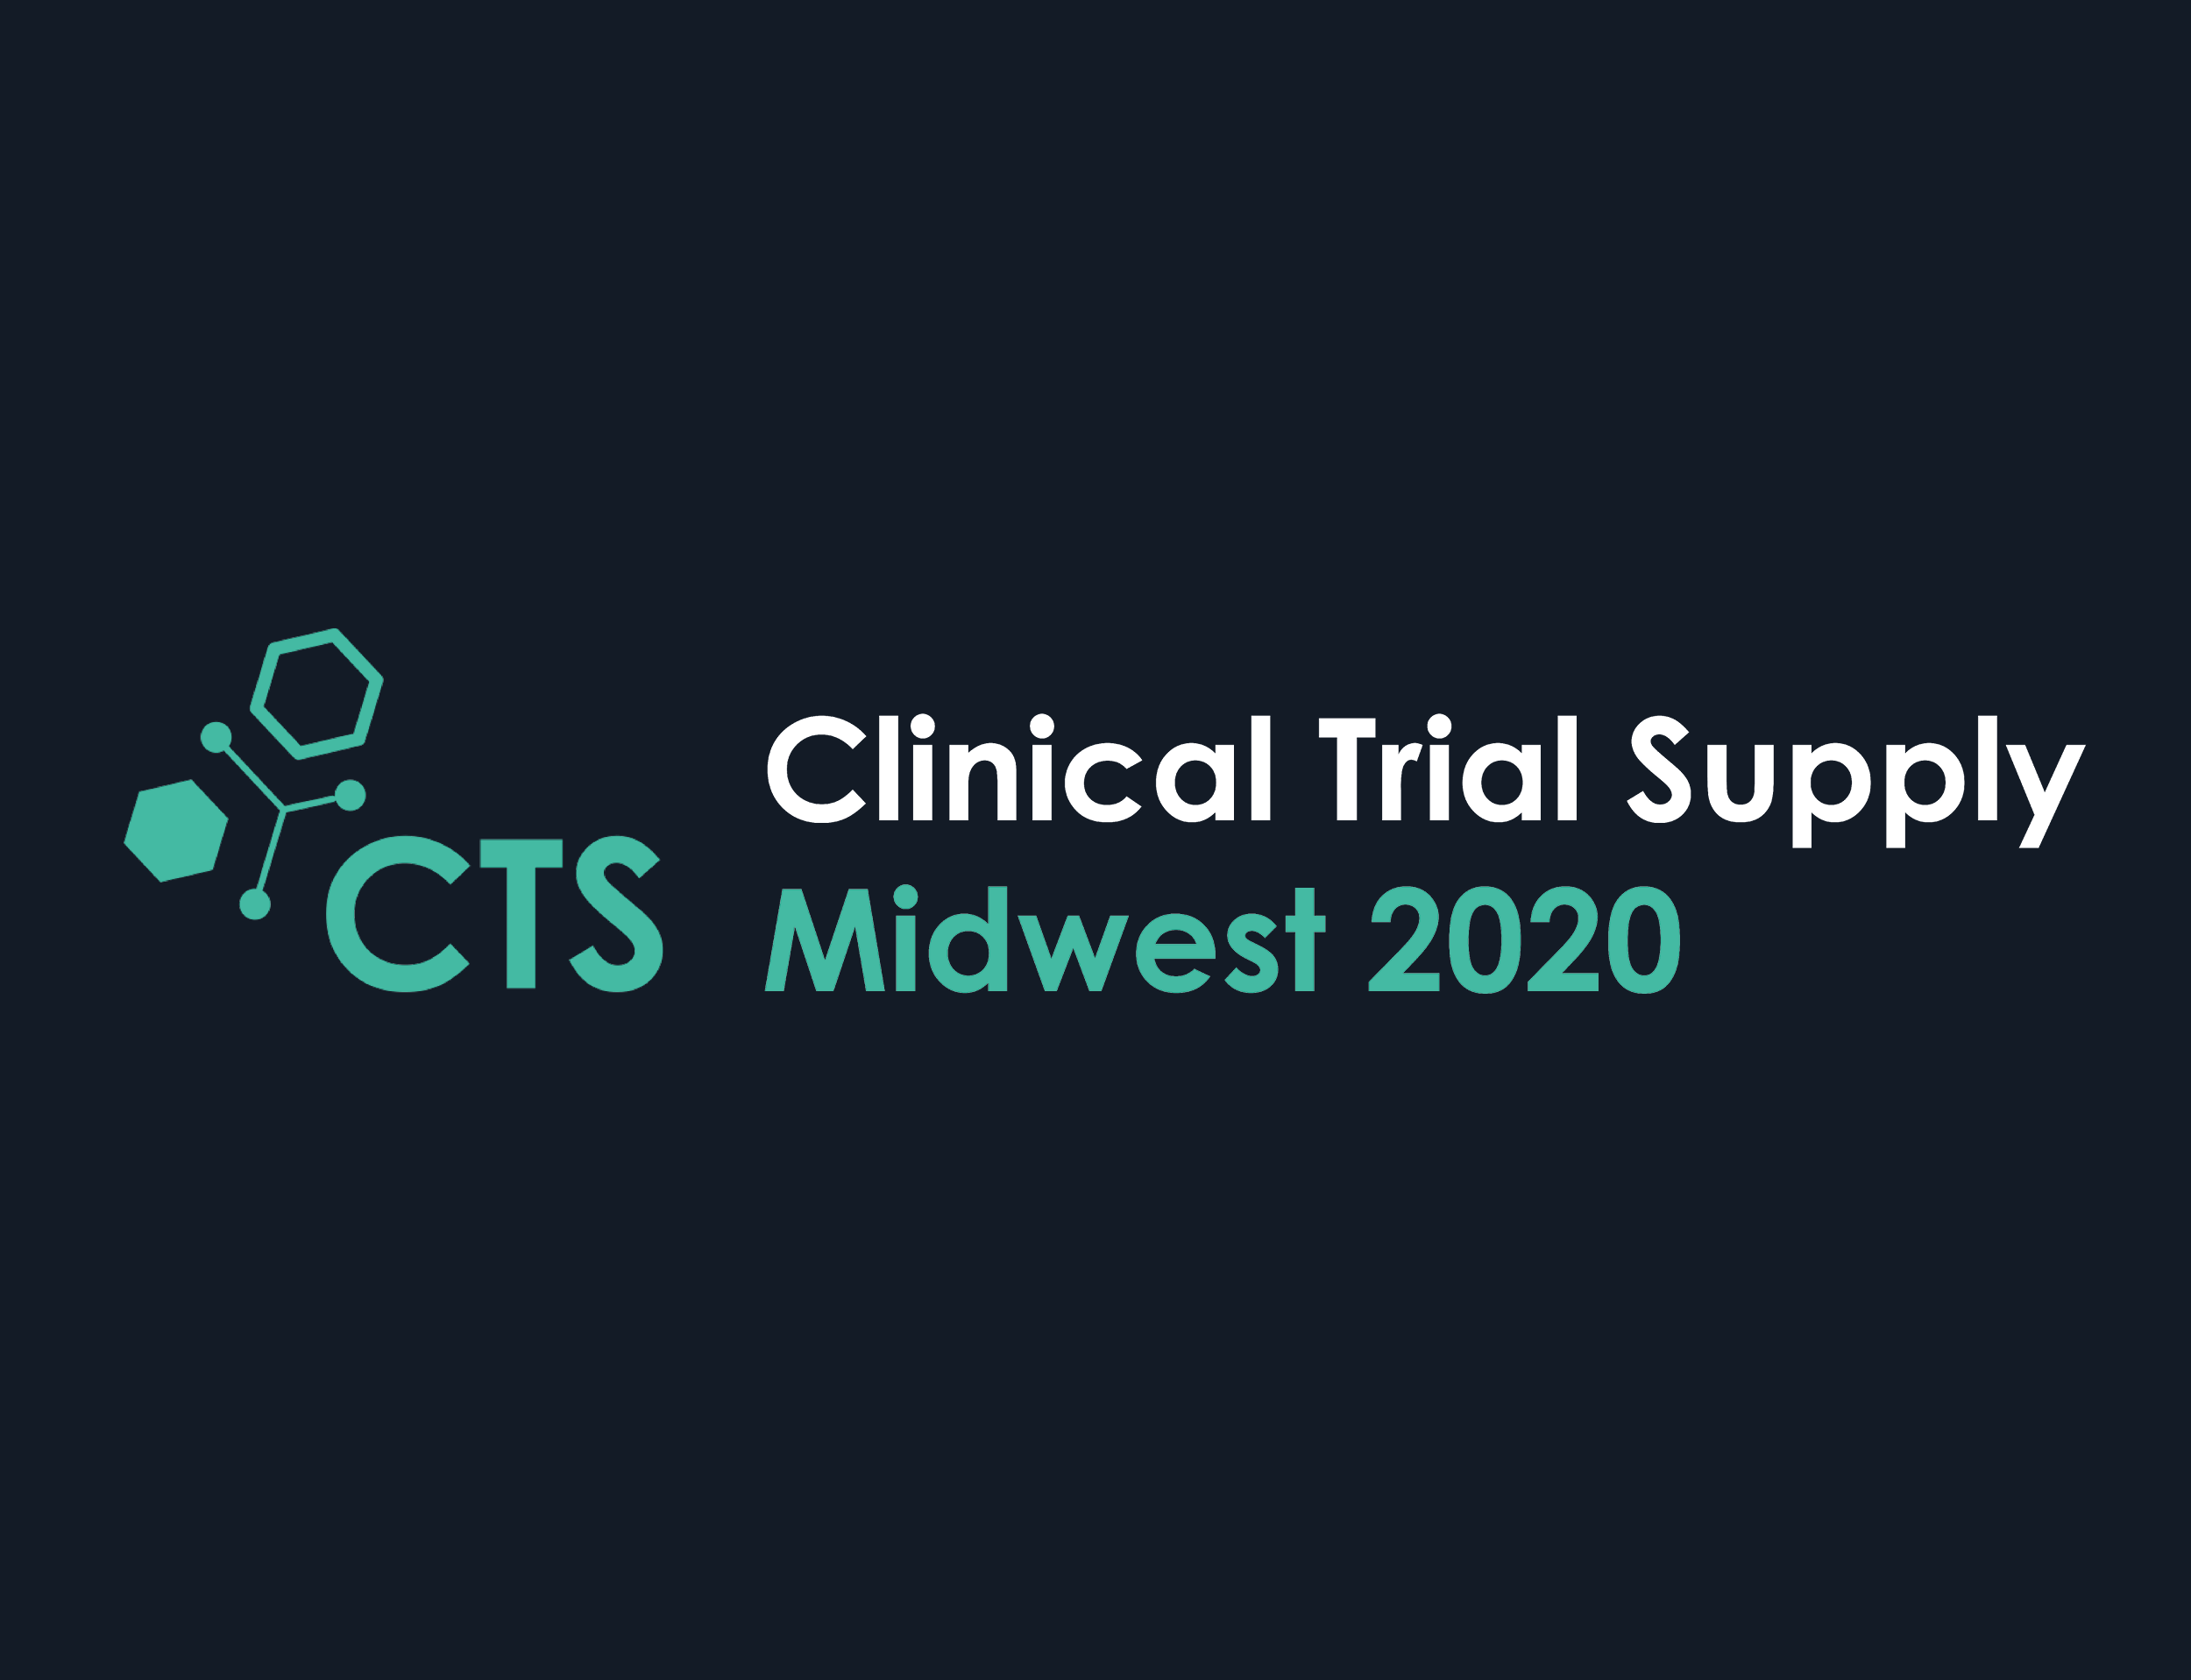 Clinical Trials Midwest 2020